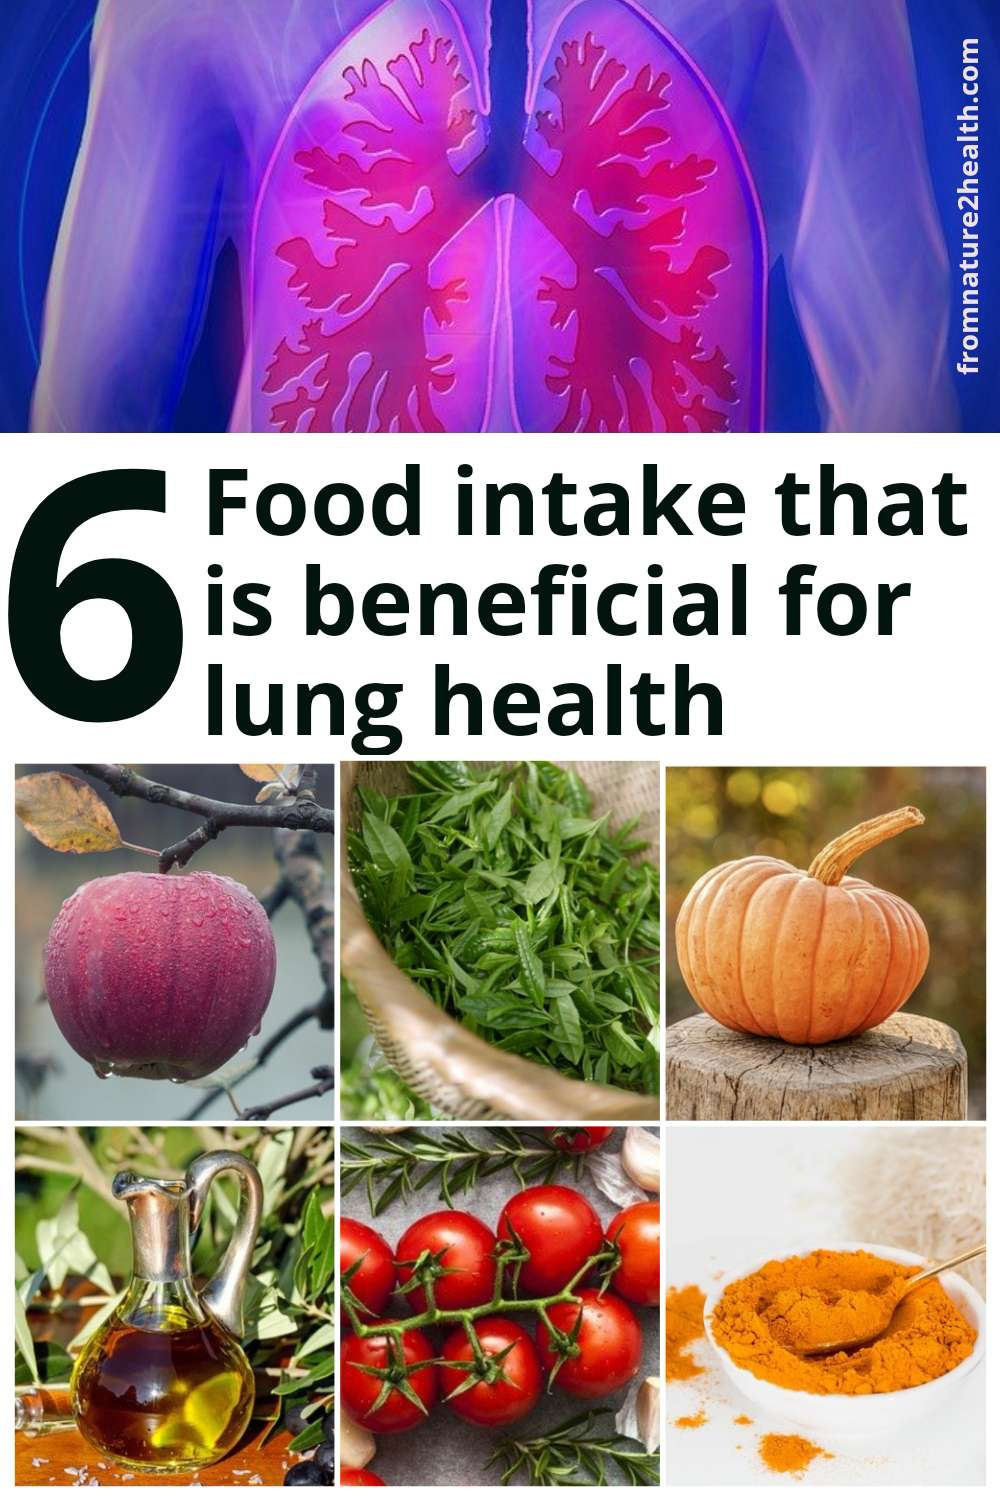 Apple, Green Tea, Olive Oil, Pumpkin, Tomatoes is  Food intake that is beneficial for lung health